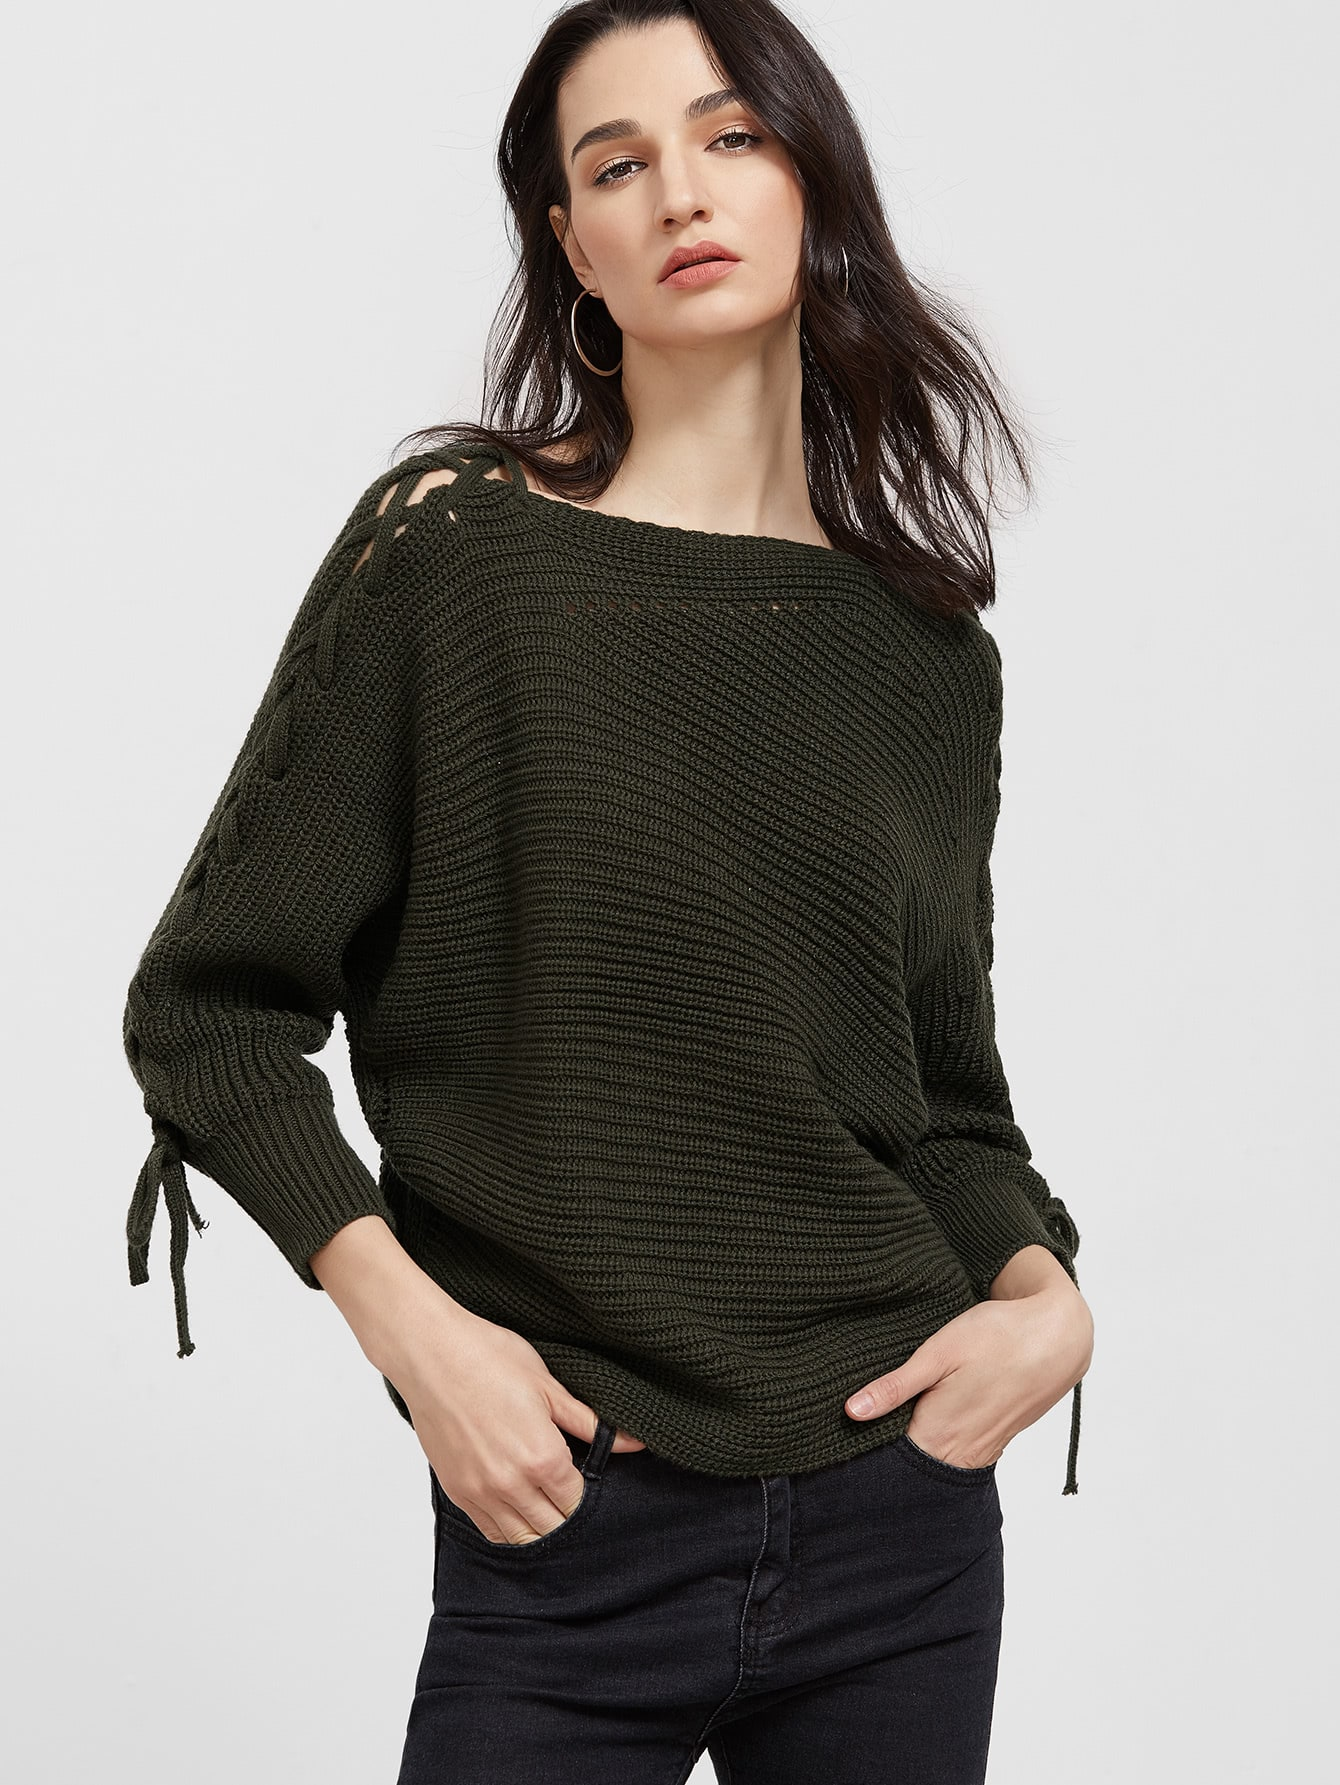 Army Green Lace Up Sleeve Sweater sweater161213001